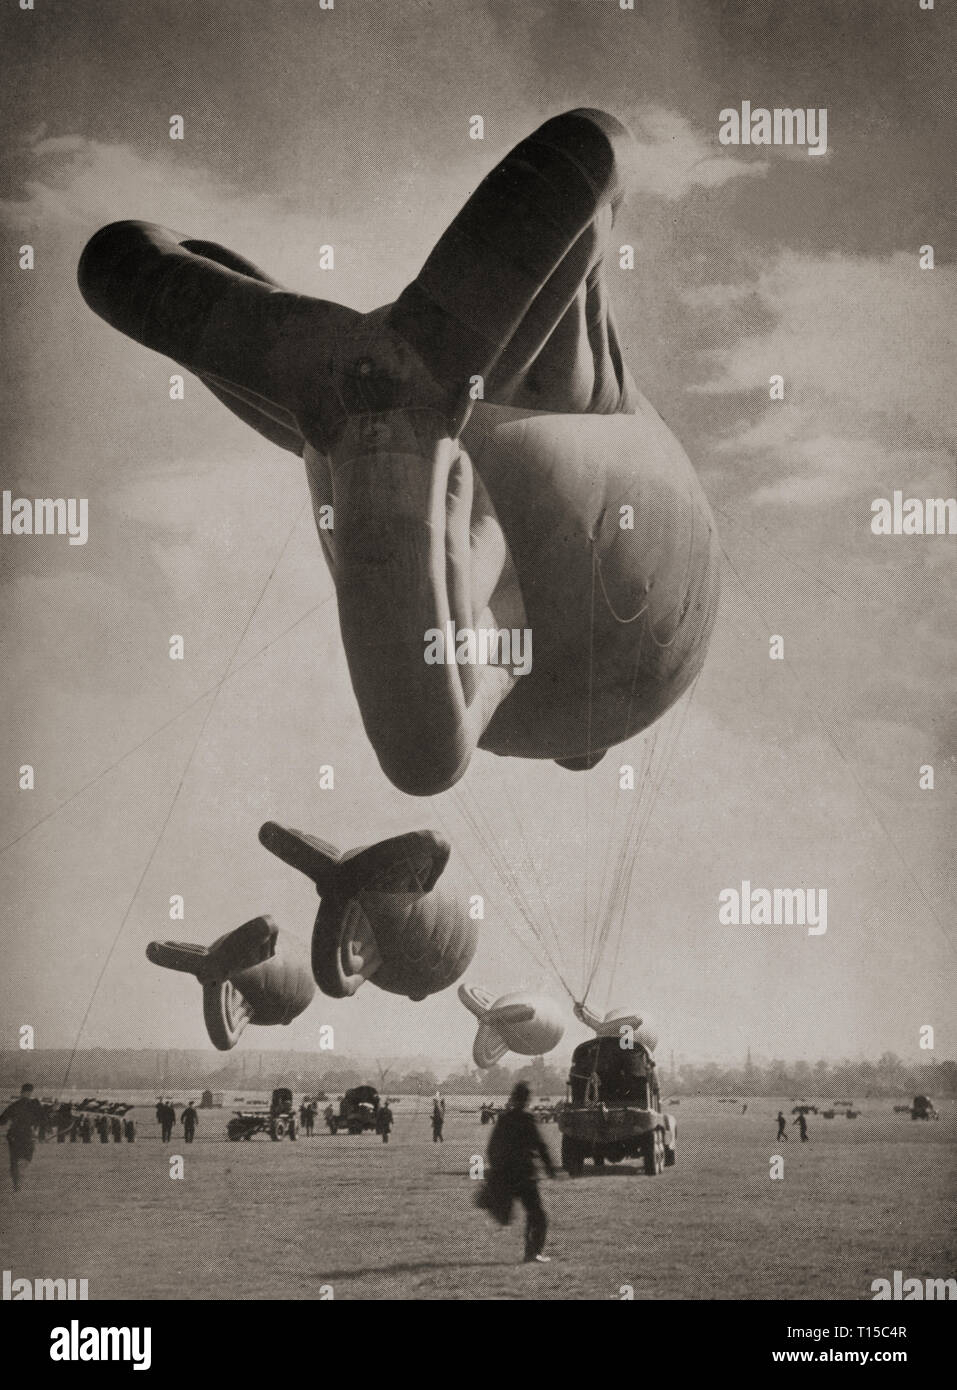 Barrage Balloons being towed by their winch vehicles. In 1938 the British Balloon Command was established to protect cities and key targets such as industrial areas, ports and harbours. Balloons were intended to defend against dive bombers flying at heights up to 5,000 feet (1,500 m), forcing them to fly higher and into the range of concentrated anti-aircraft fire—anti-aircraft guns could not traverse fast enough to attack aircraft flying at low altitude and high speed. - Stock Image